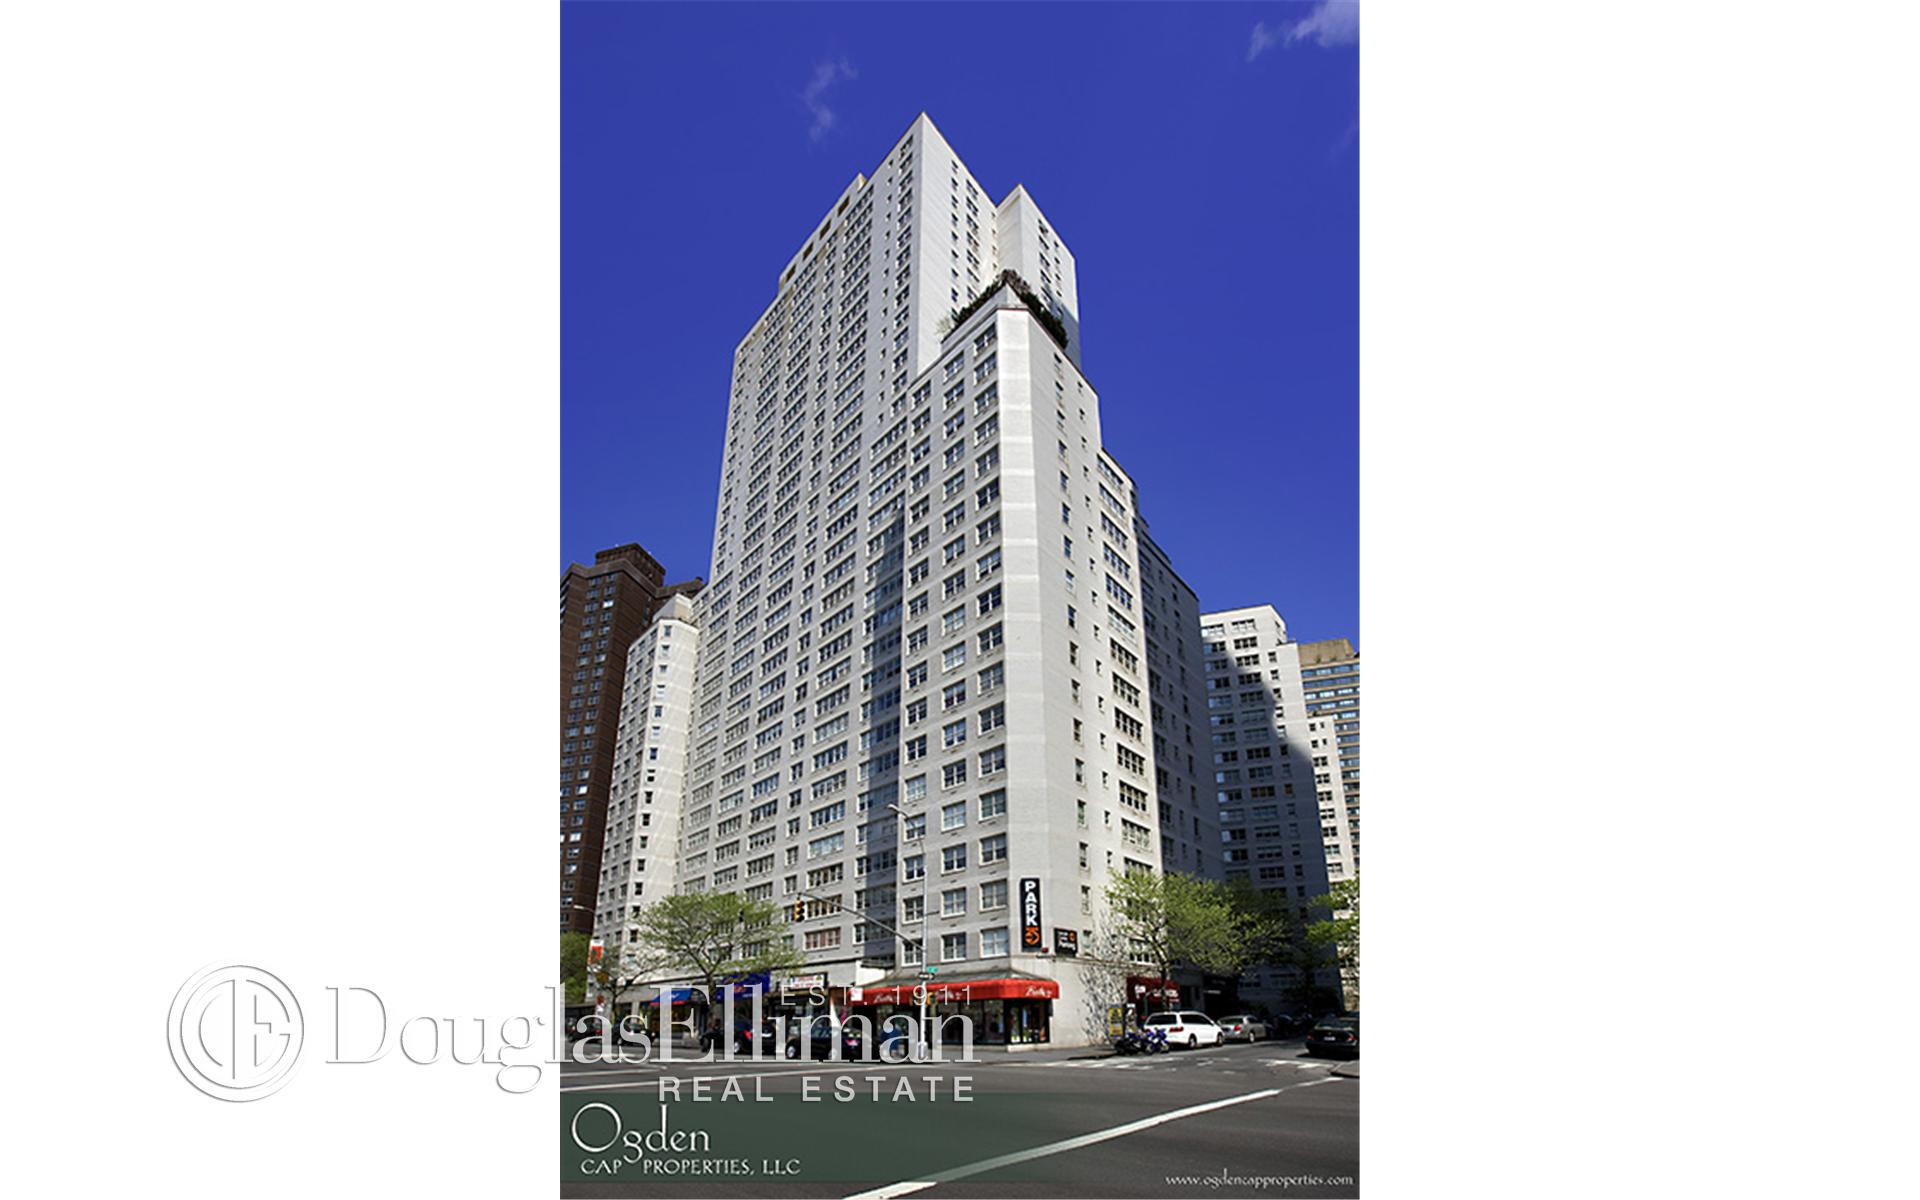 Streeteasy dorchester towers at 155 west 68th street in lincoln